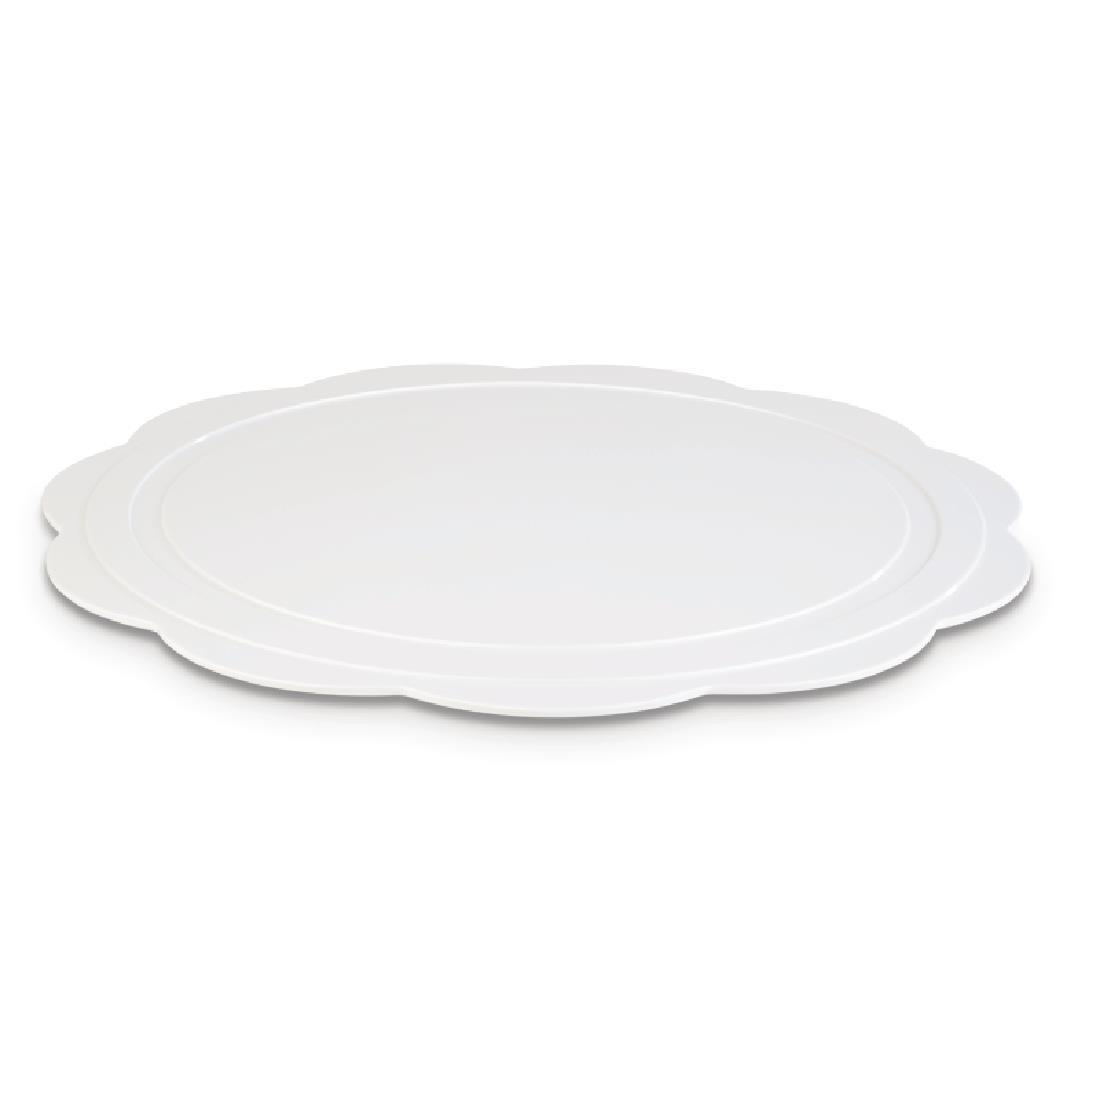 DE548 - APS+ Bakery Tray White 425mm - Each - DE548